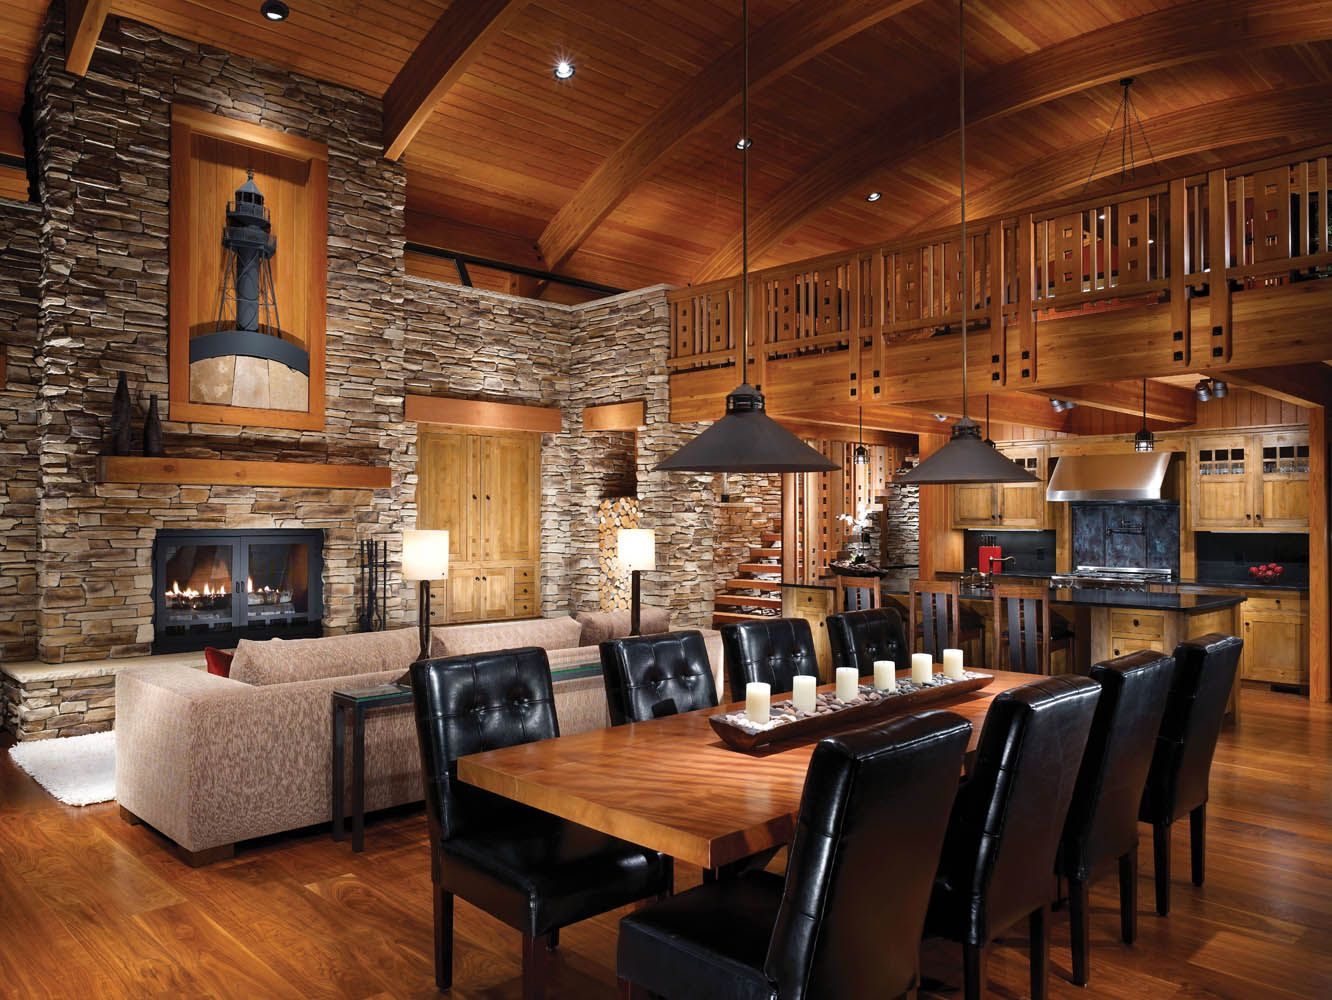 Furniture Log Cabin Decorating Ideas With Wooden Table And Chairs